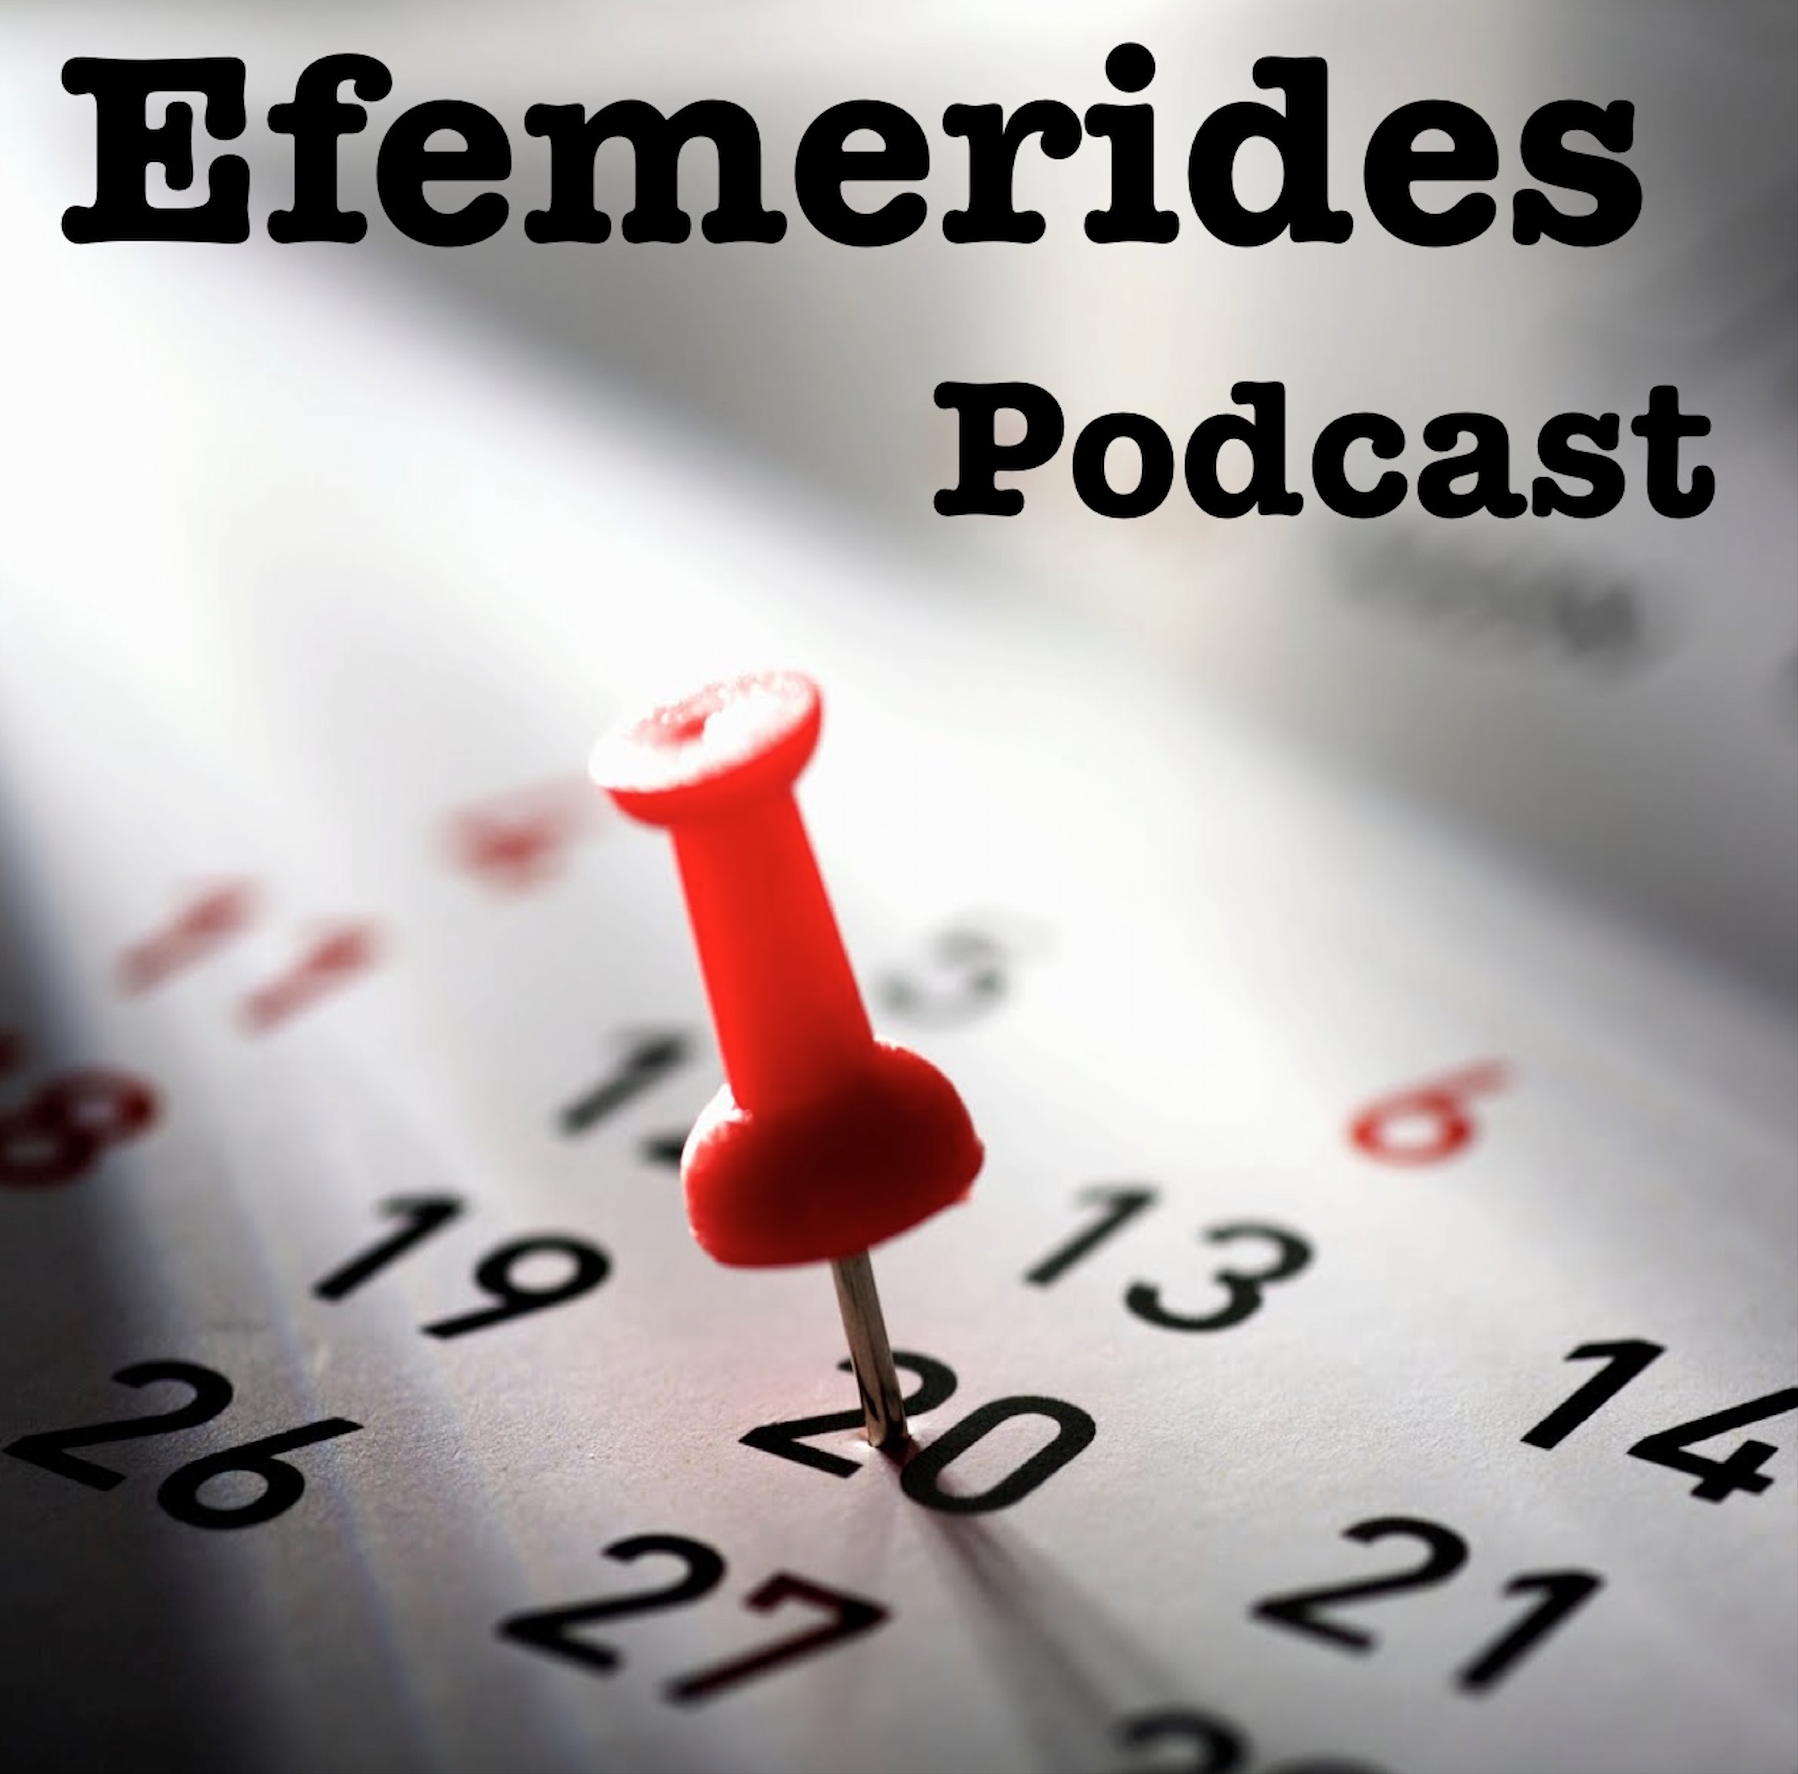 Efemerides Podcast